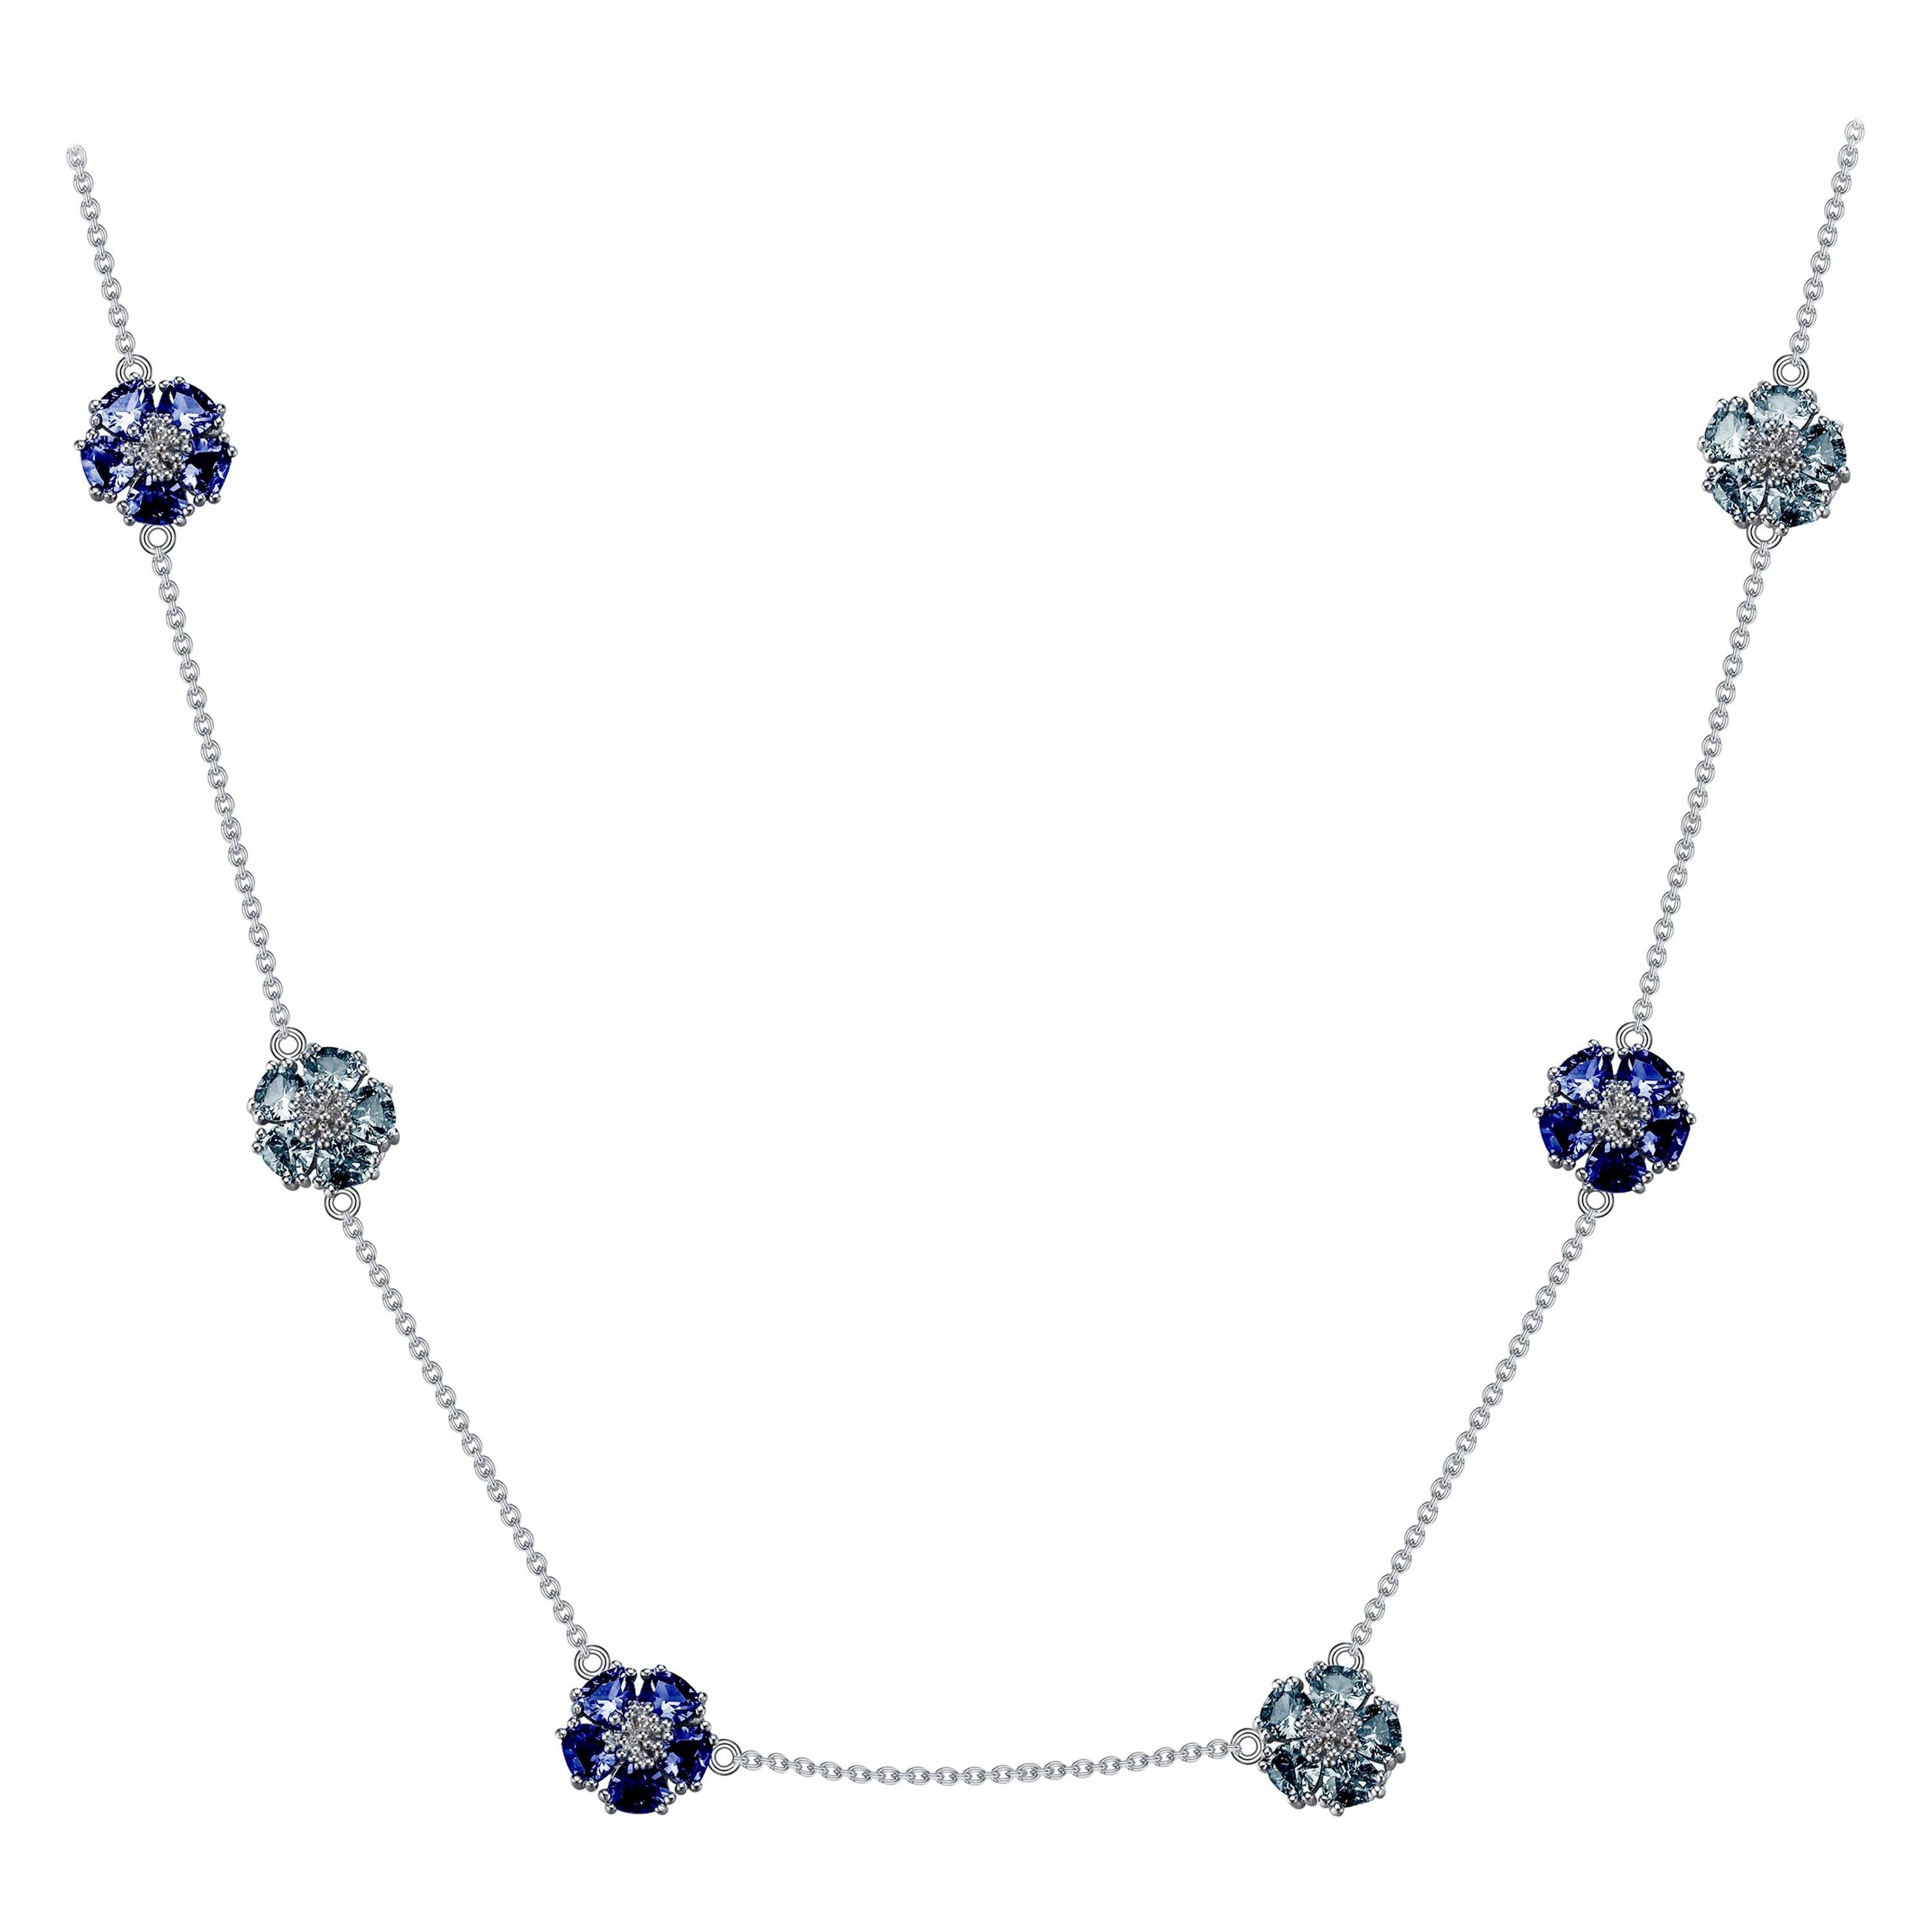 London and Sky Blue Topaz Blossom Gentile Chain Necklace